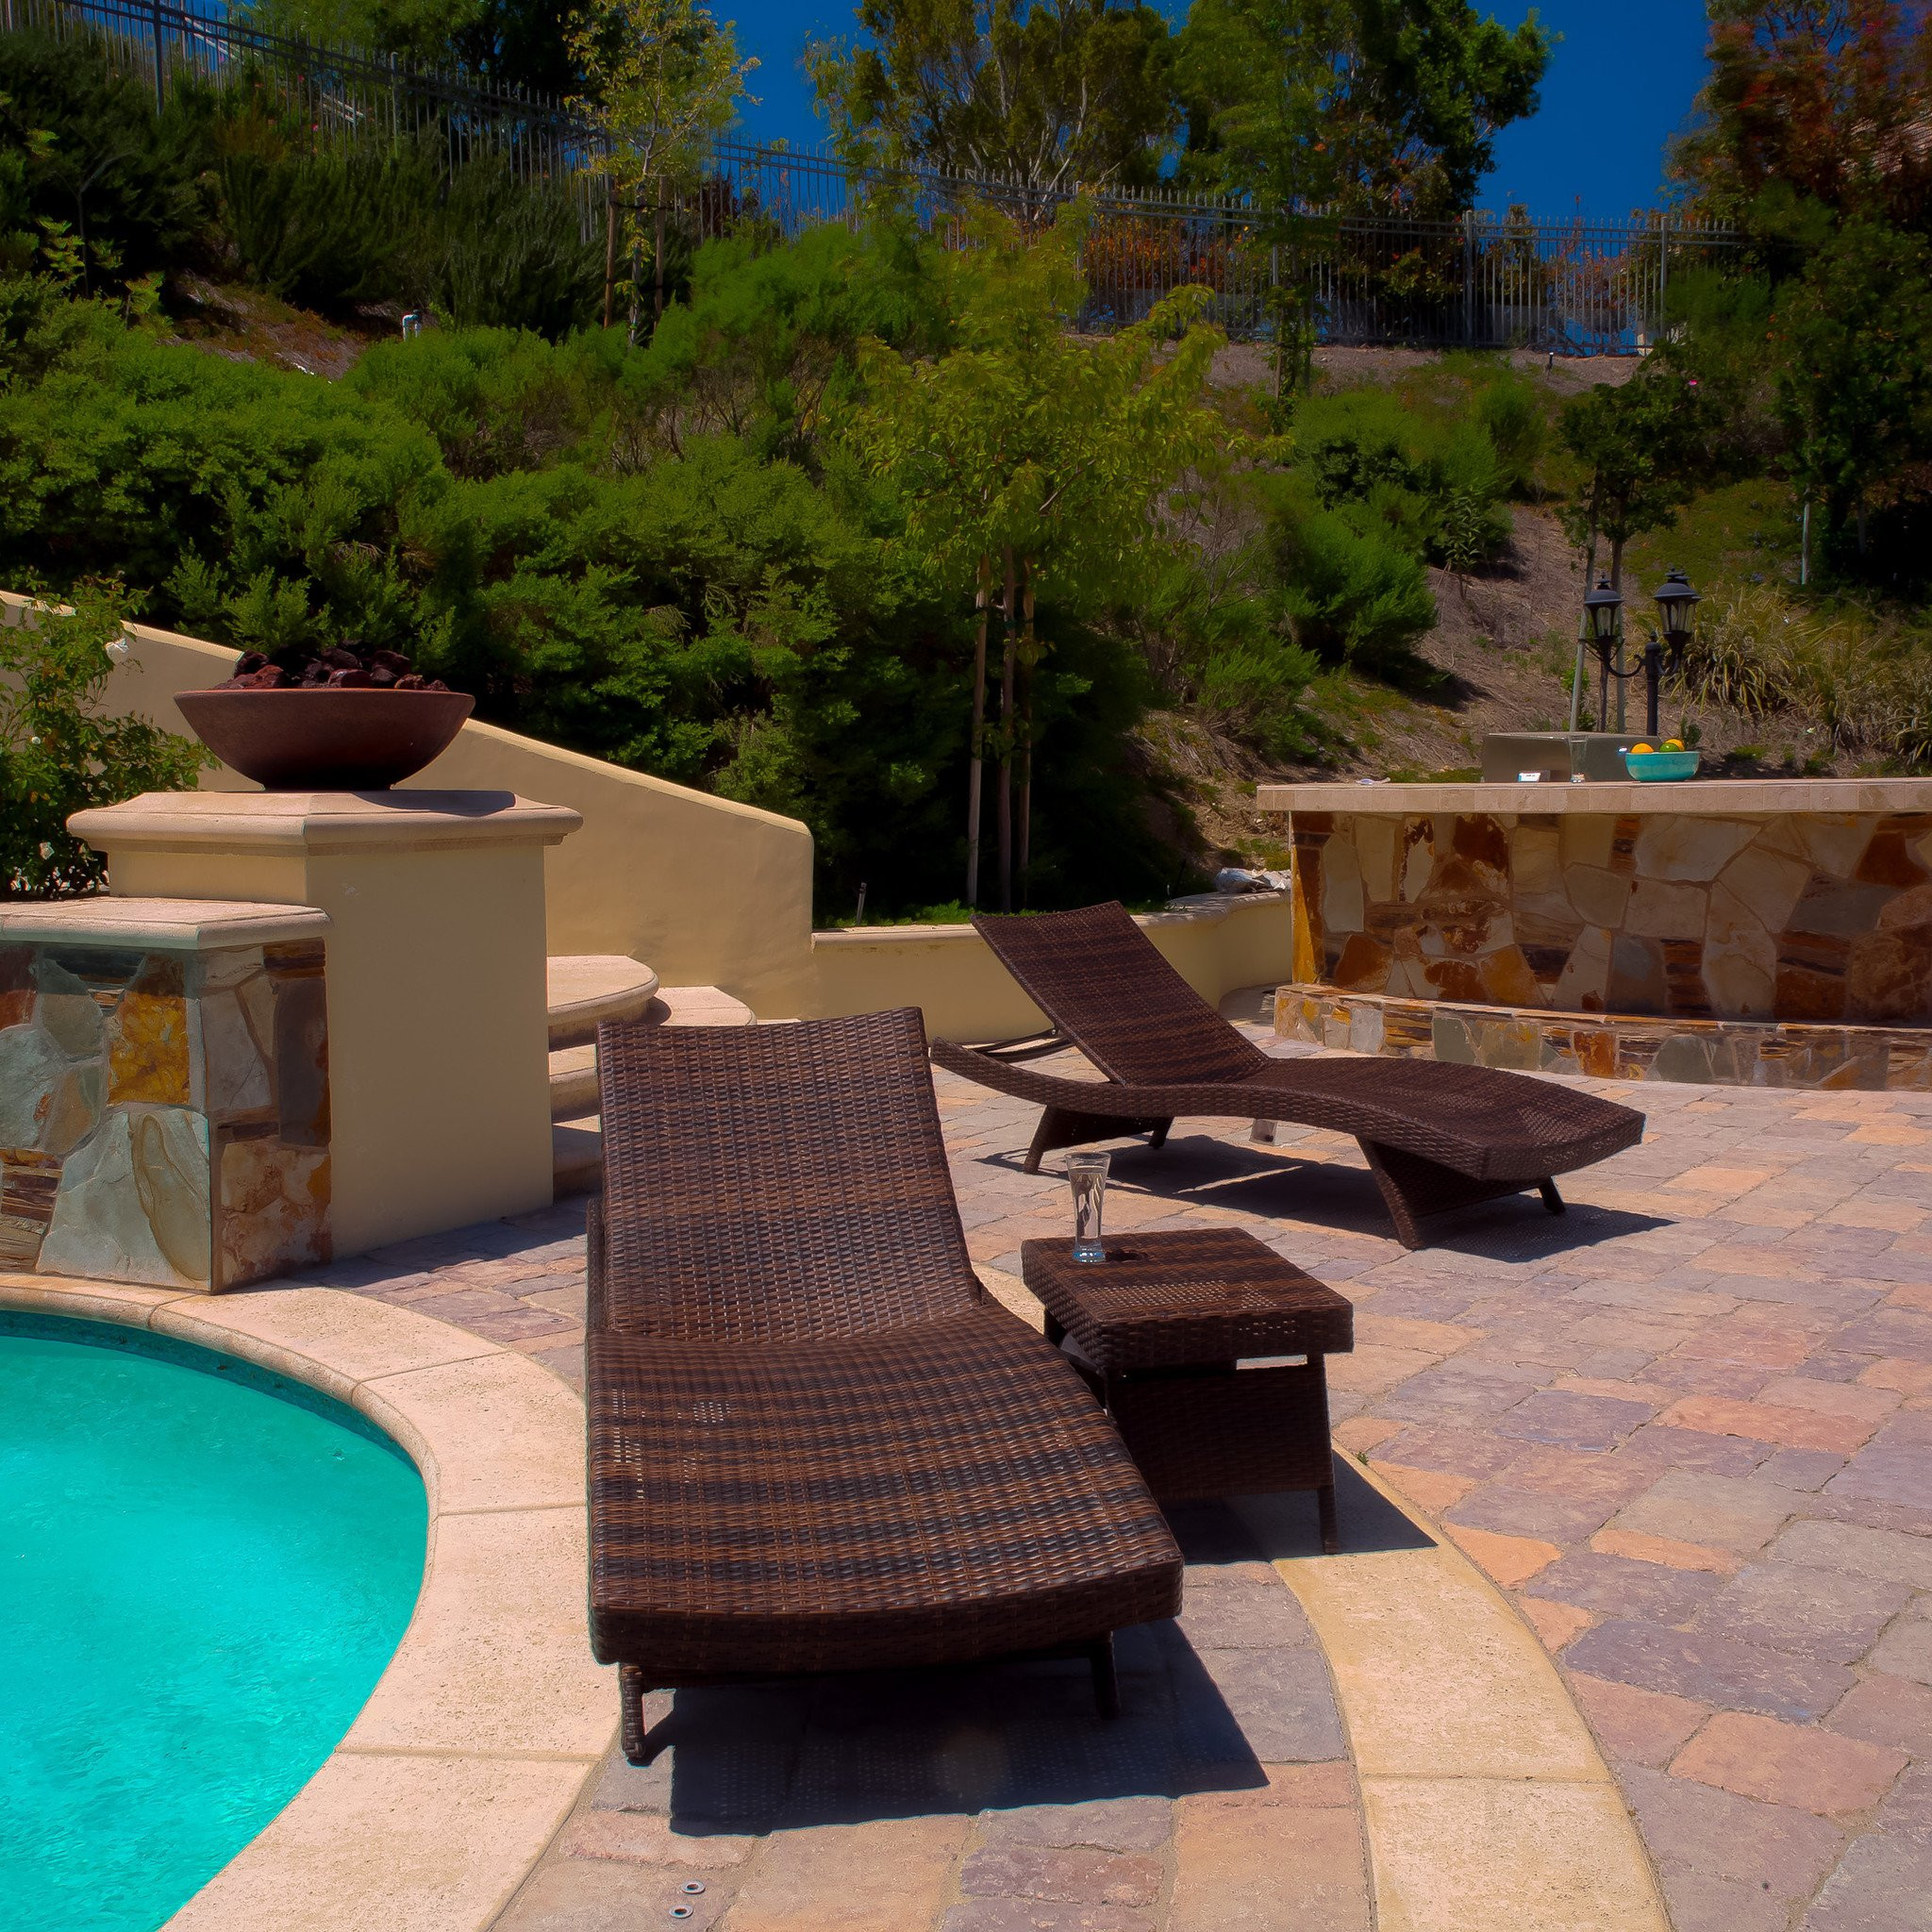 Lakeport 3pc Outdoor Wicker Chaise Lounge & Table...